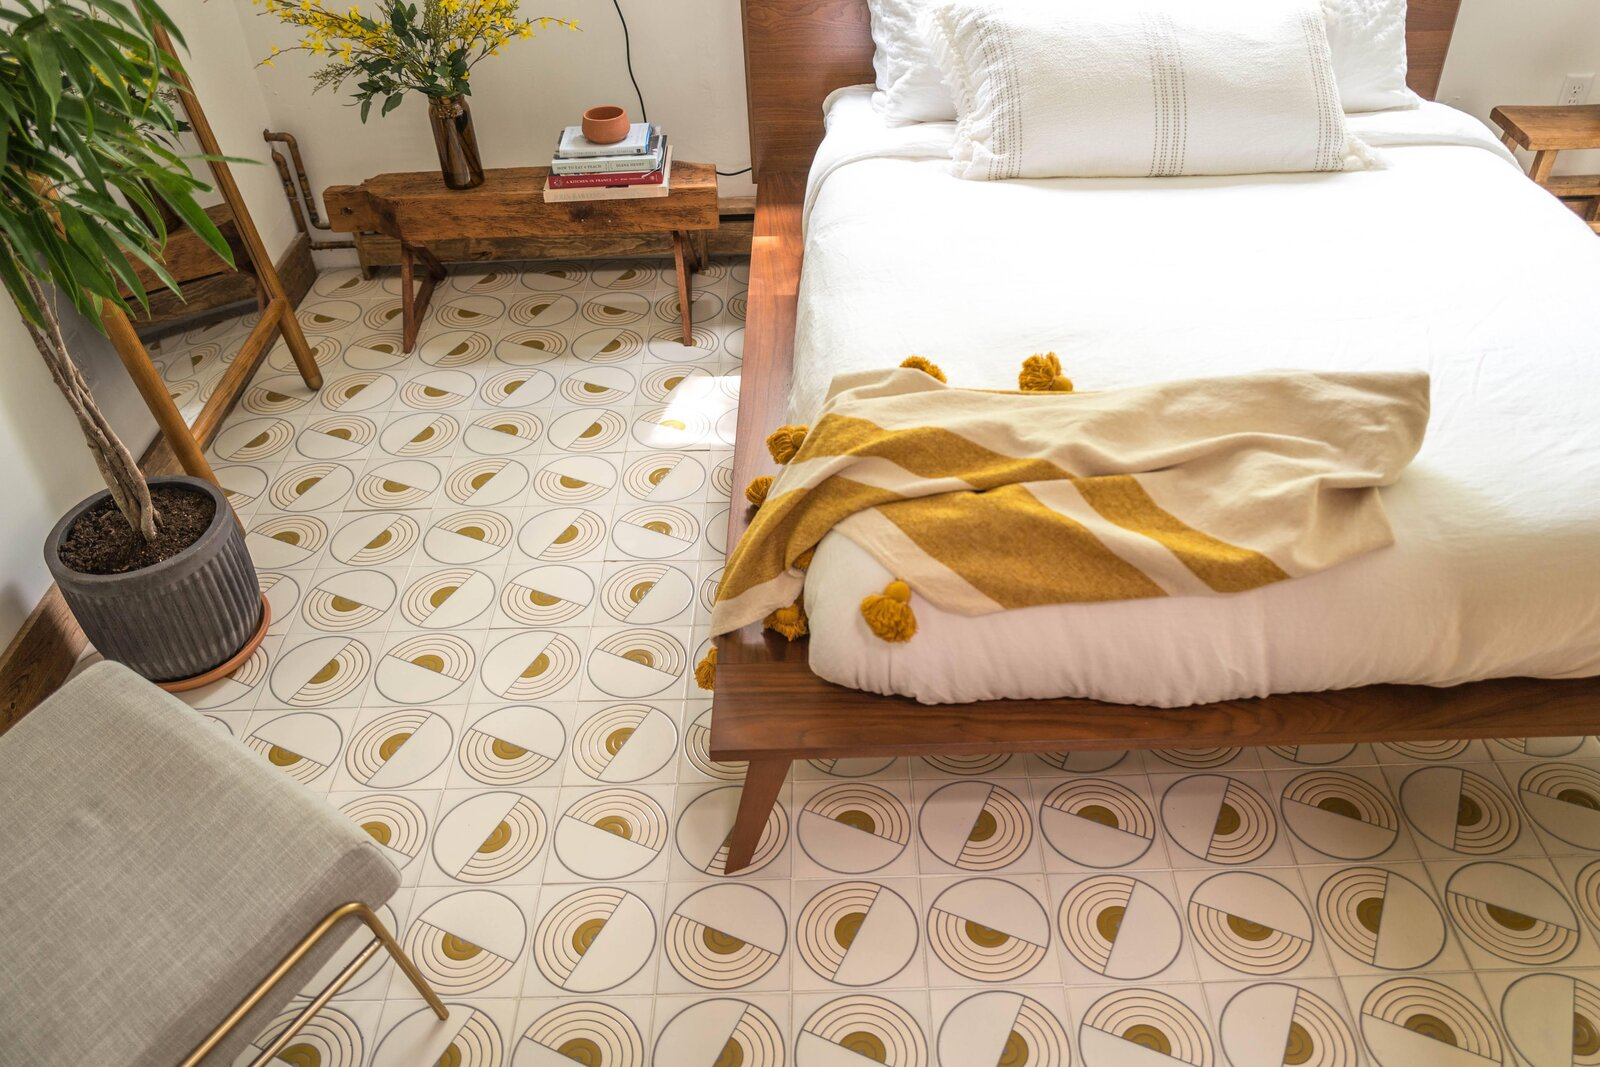 The Hunter Barnhouse by Danielle and Ely Franko bedroom with patterned tile floor